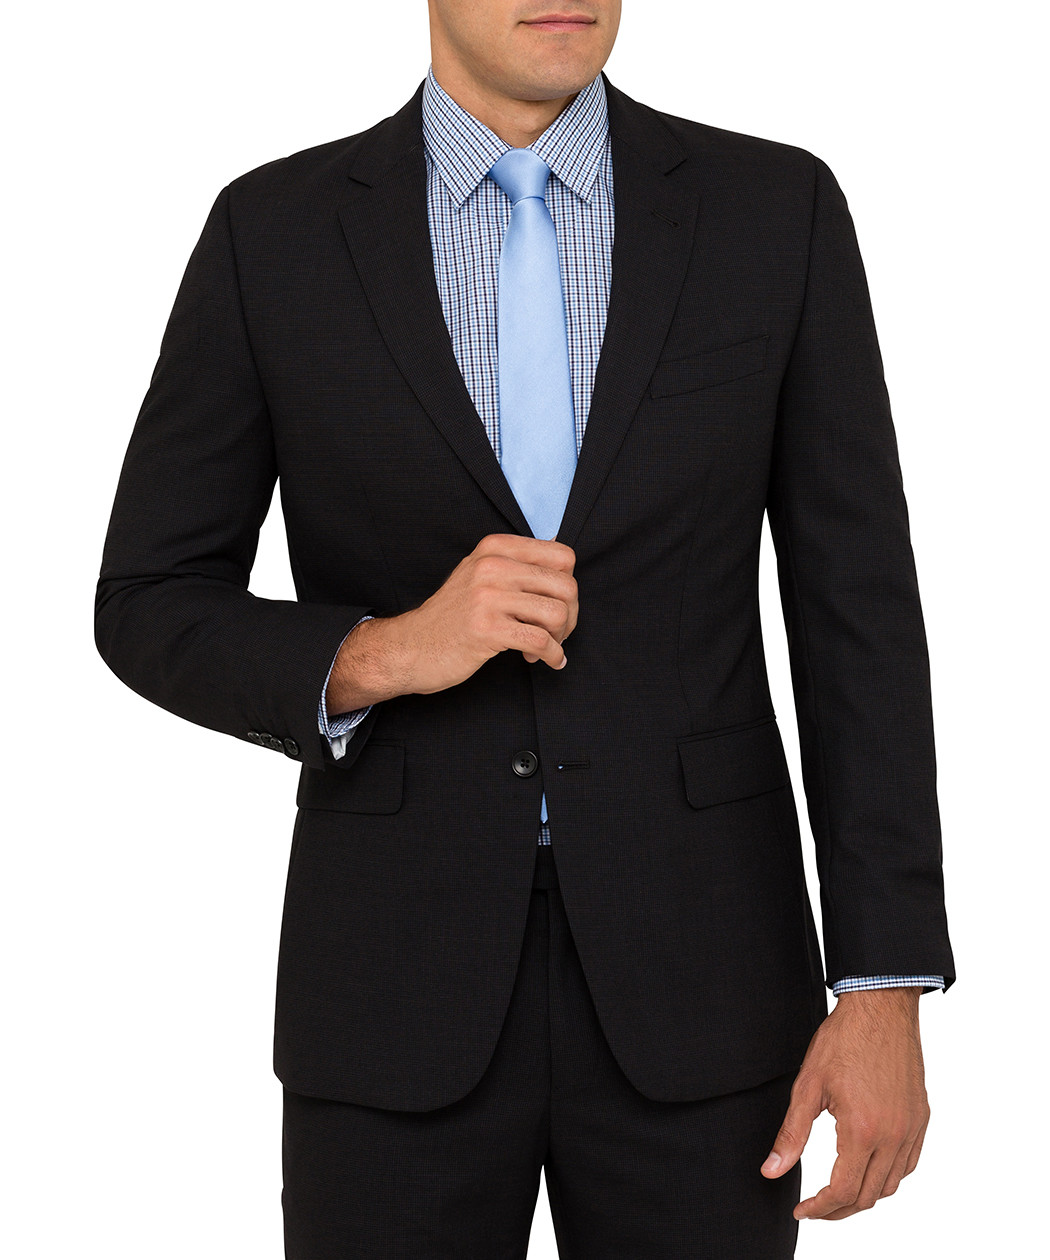 Van Heusen Slim Fit Textured Black Suit Jacket | Mens Jackets